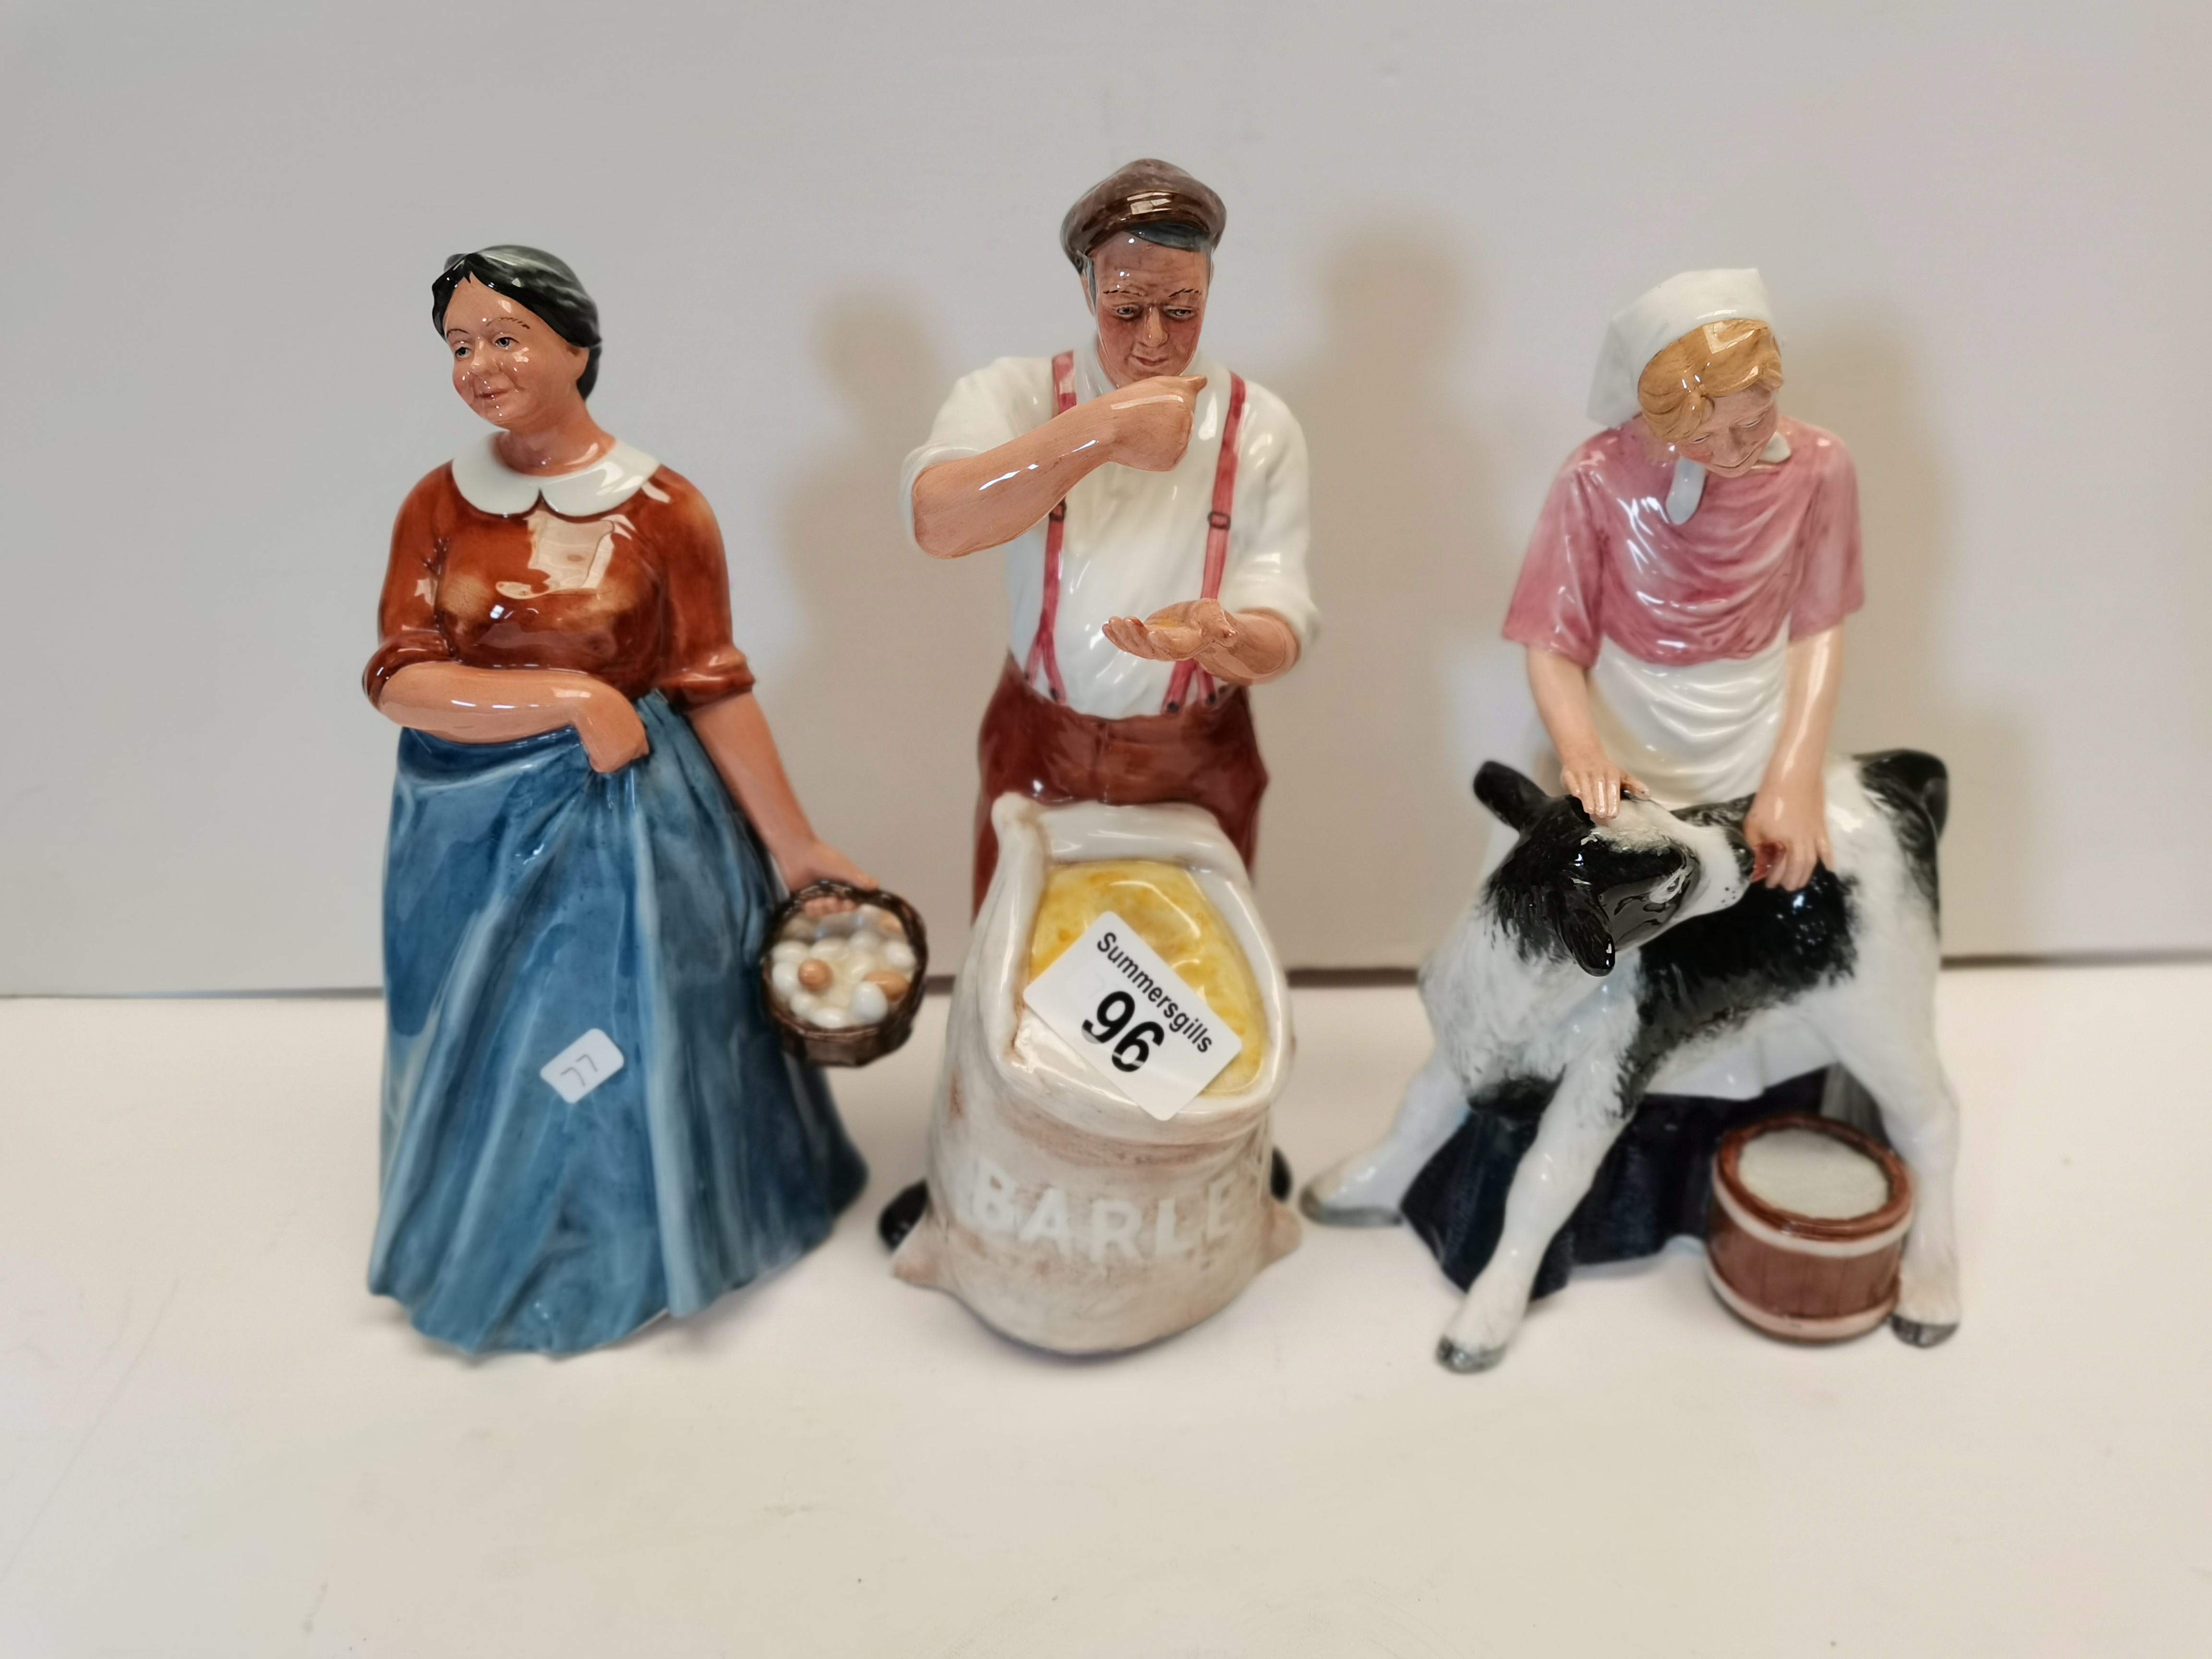 3 x Doulton figures Farmer Farmers wife and Country maid